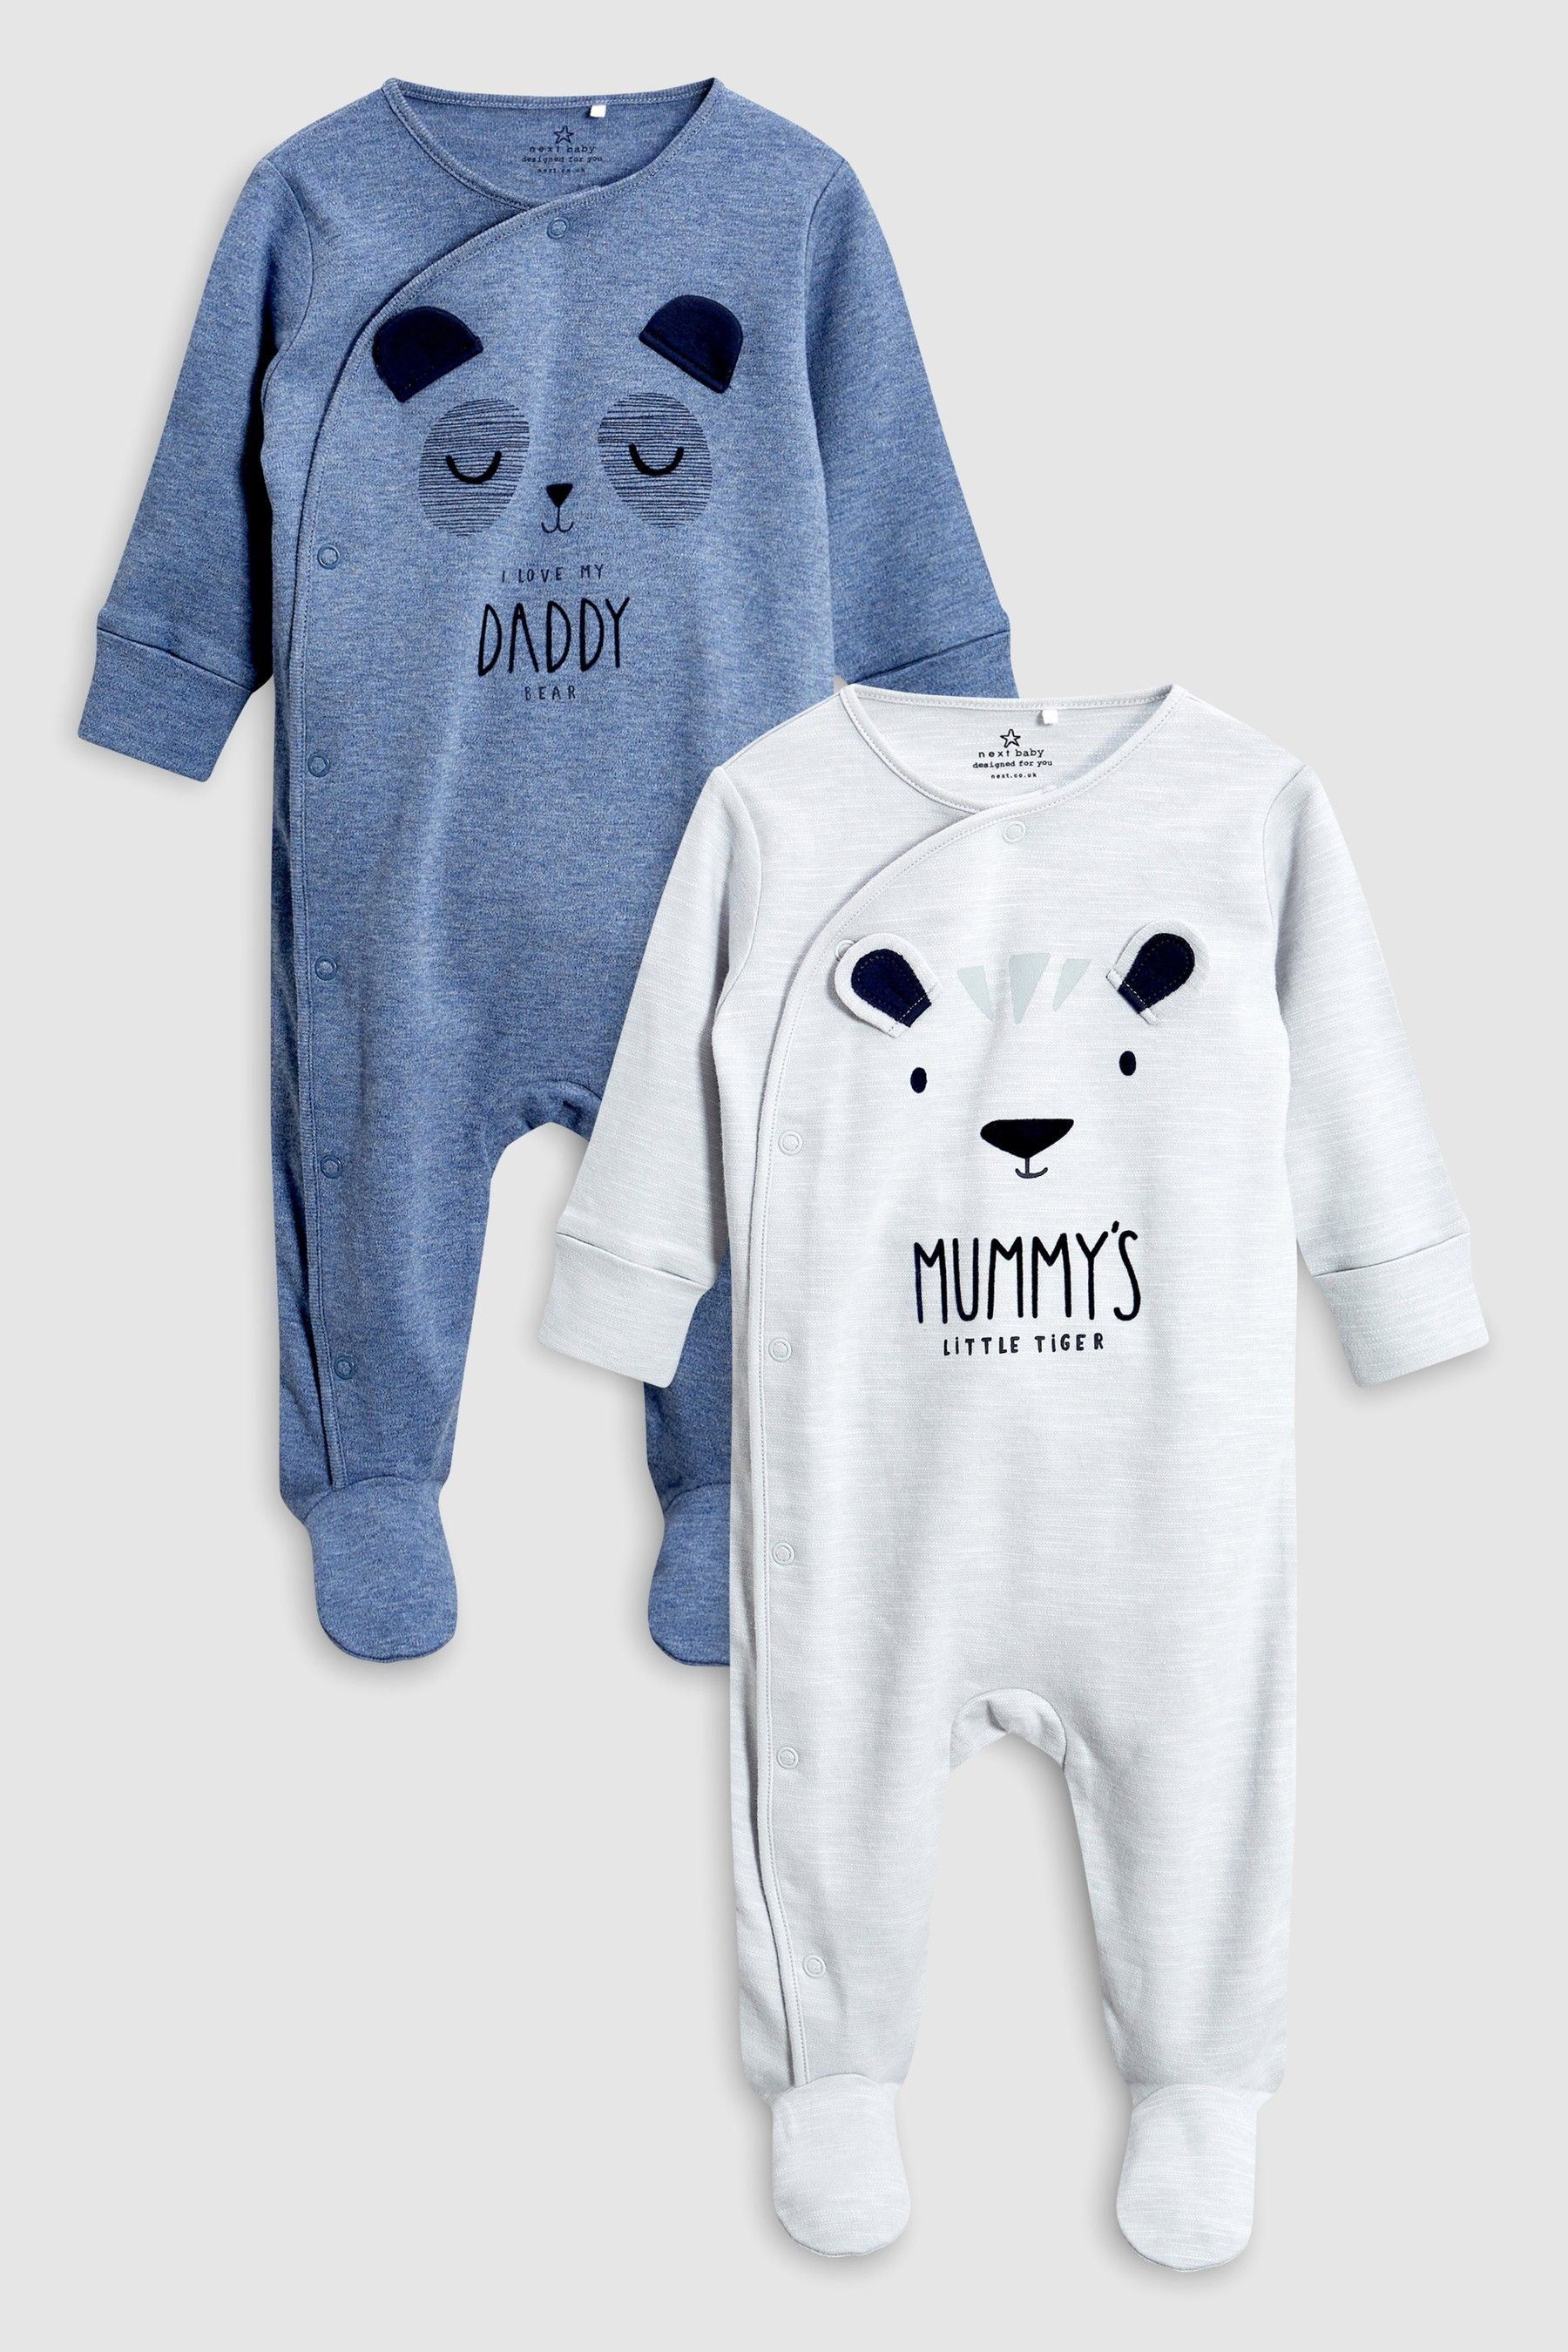 8cbd80f88 Boys Next Grey/Blue Character Mummy And Daddy Sleepsuits Two Pack  (0mths-2yrs